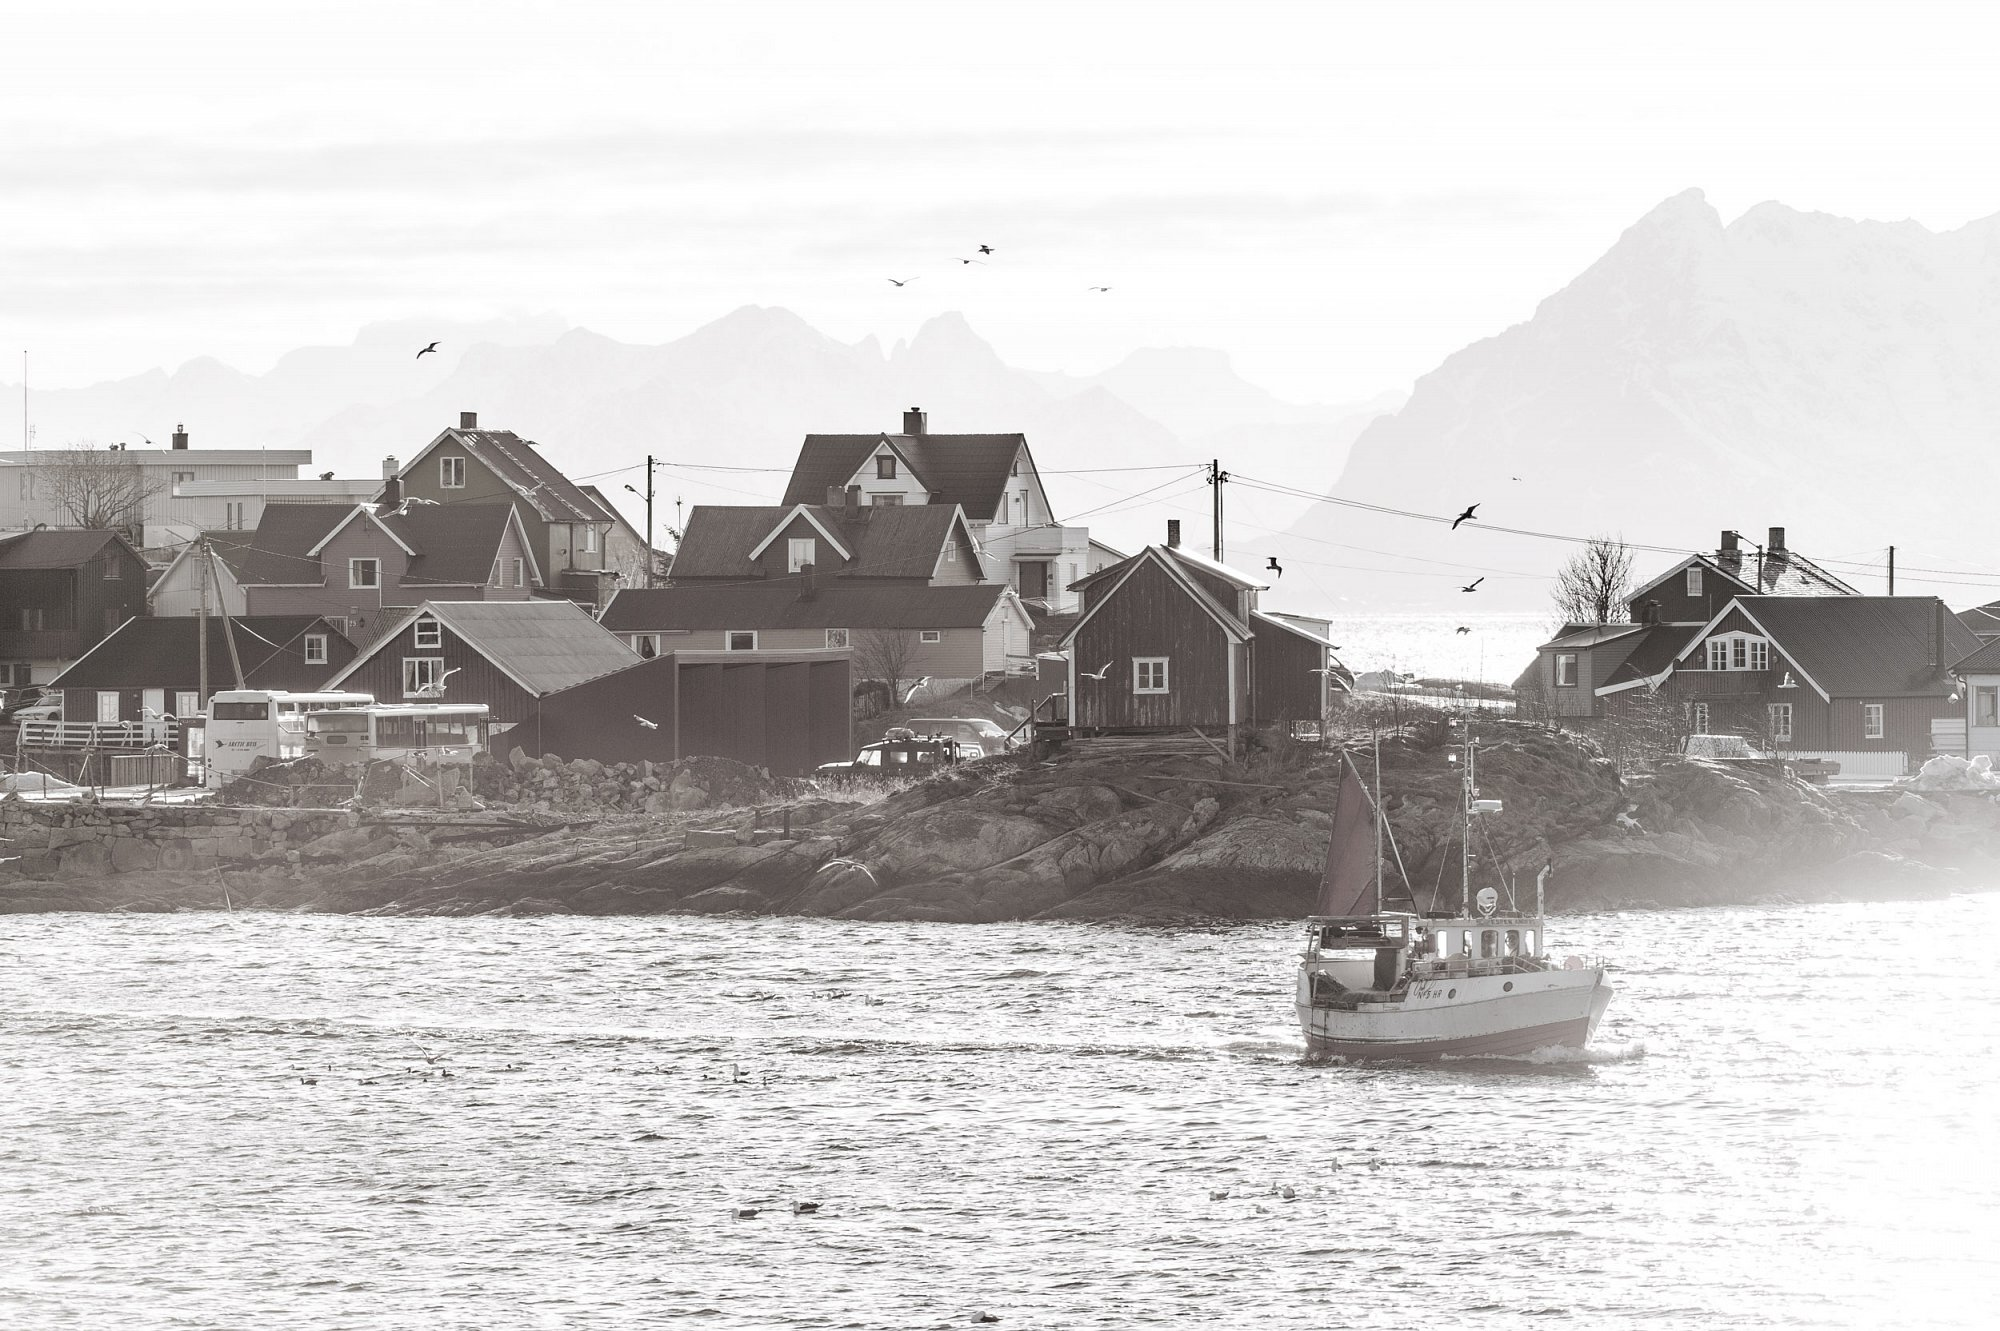 The Lofoten experience. Town of Henningsvaer. Private project.